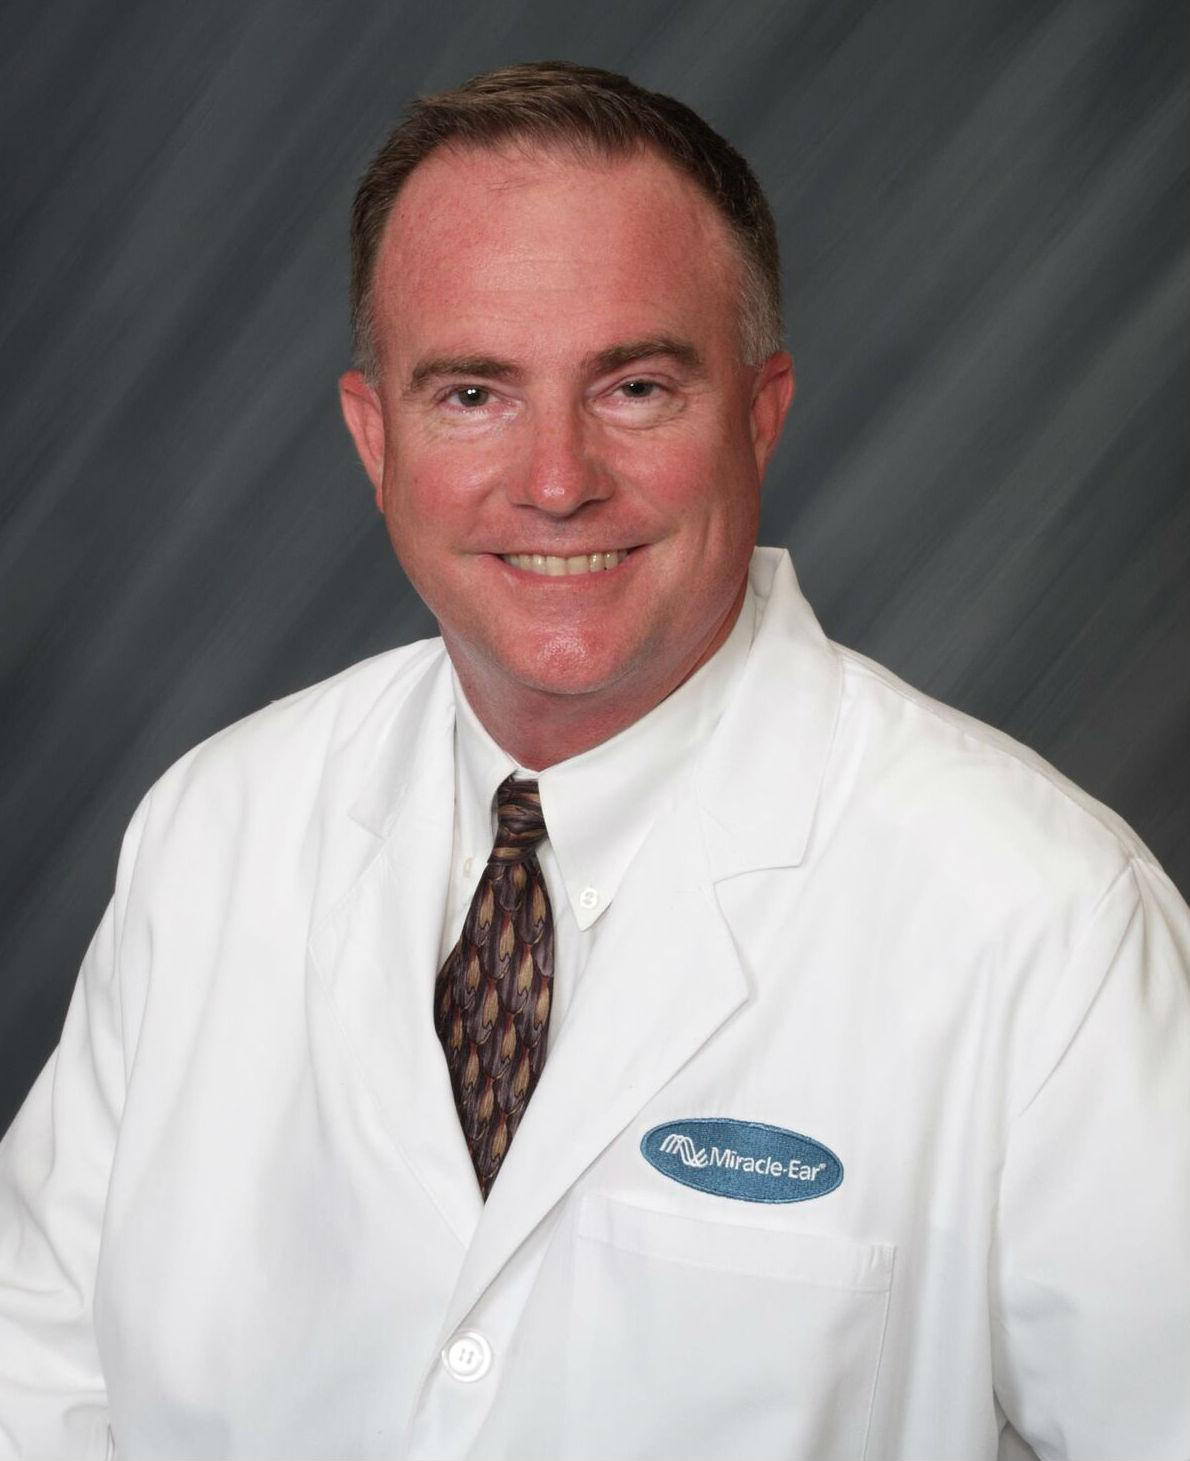 Profile Photo of Robert - Board Certified in Hearing Instrument Sciences